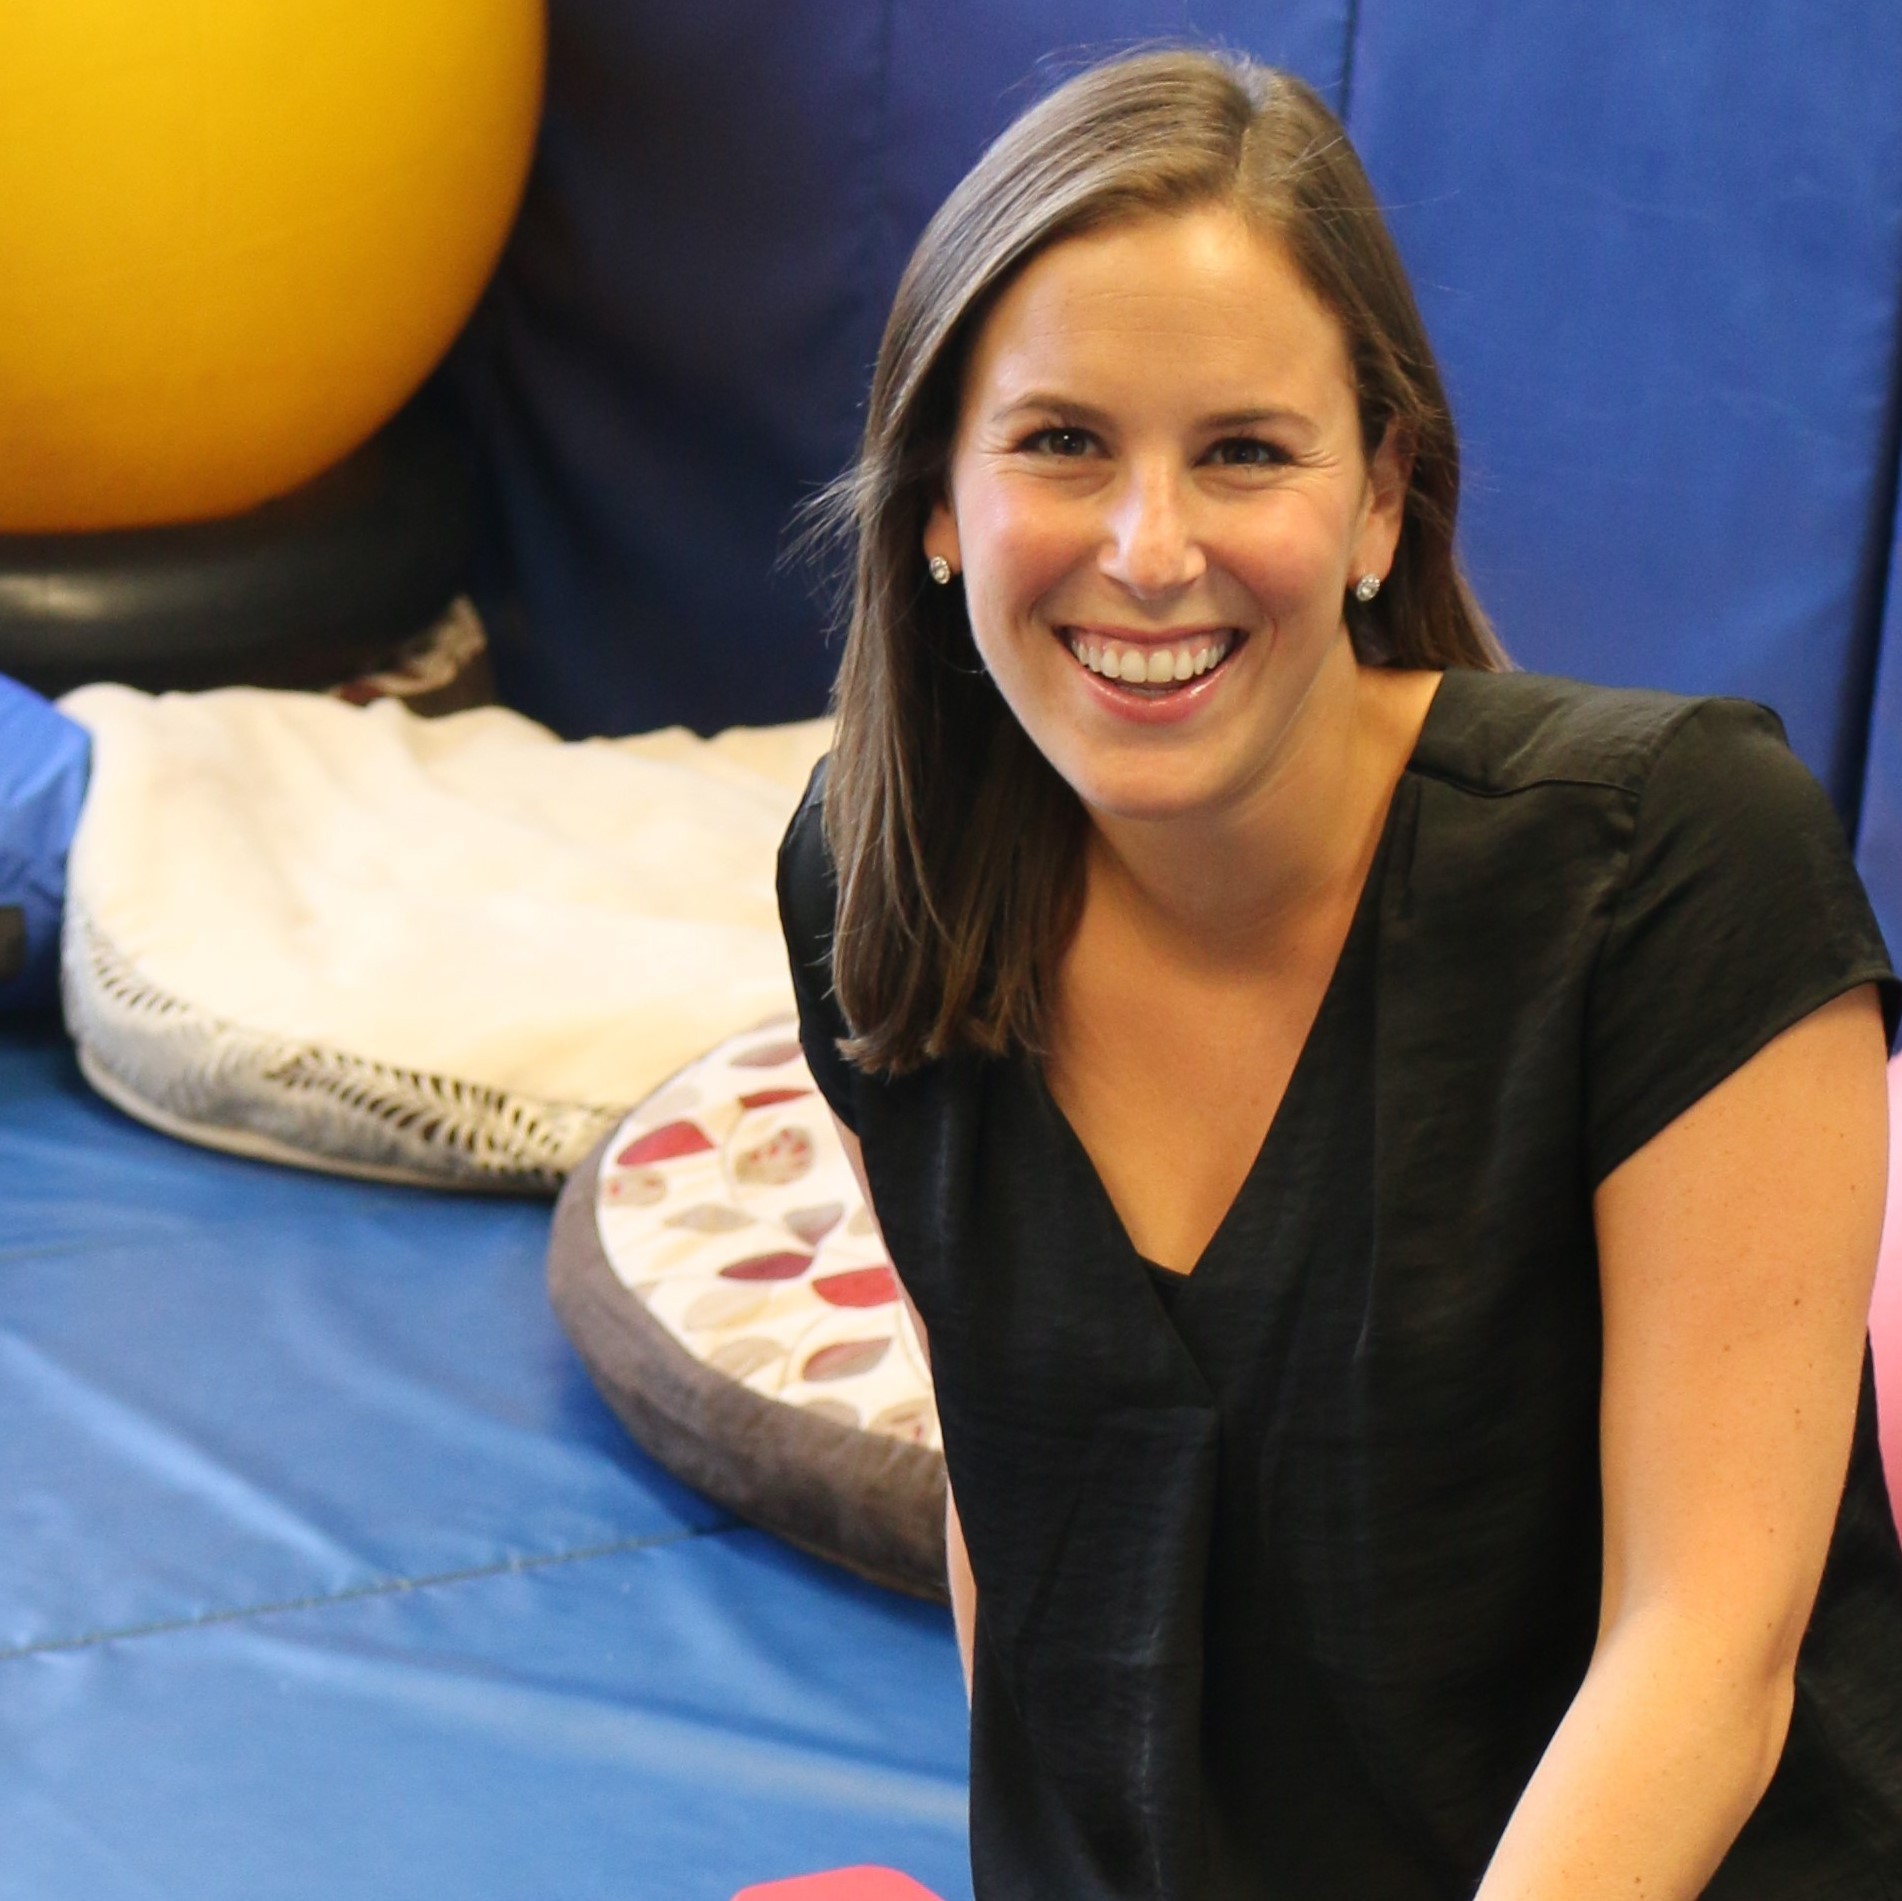 Speech Language Pathologist Sara Gotlieb